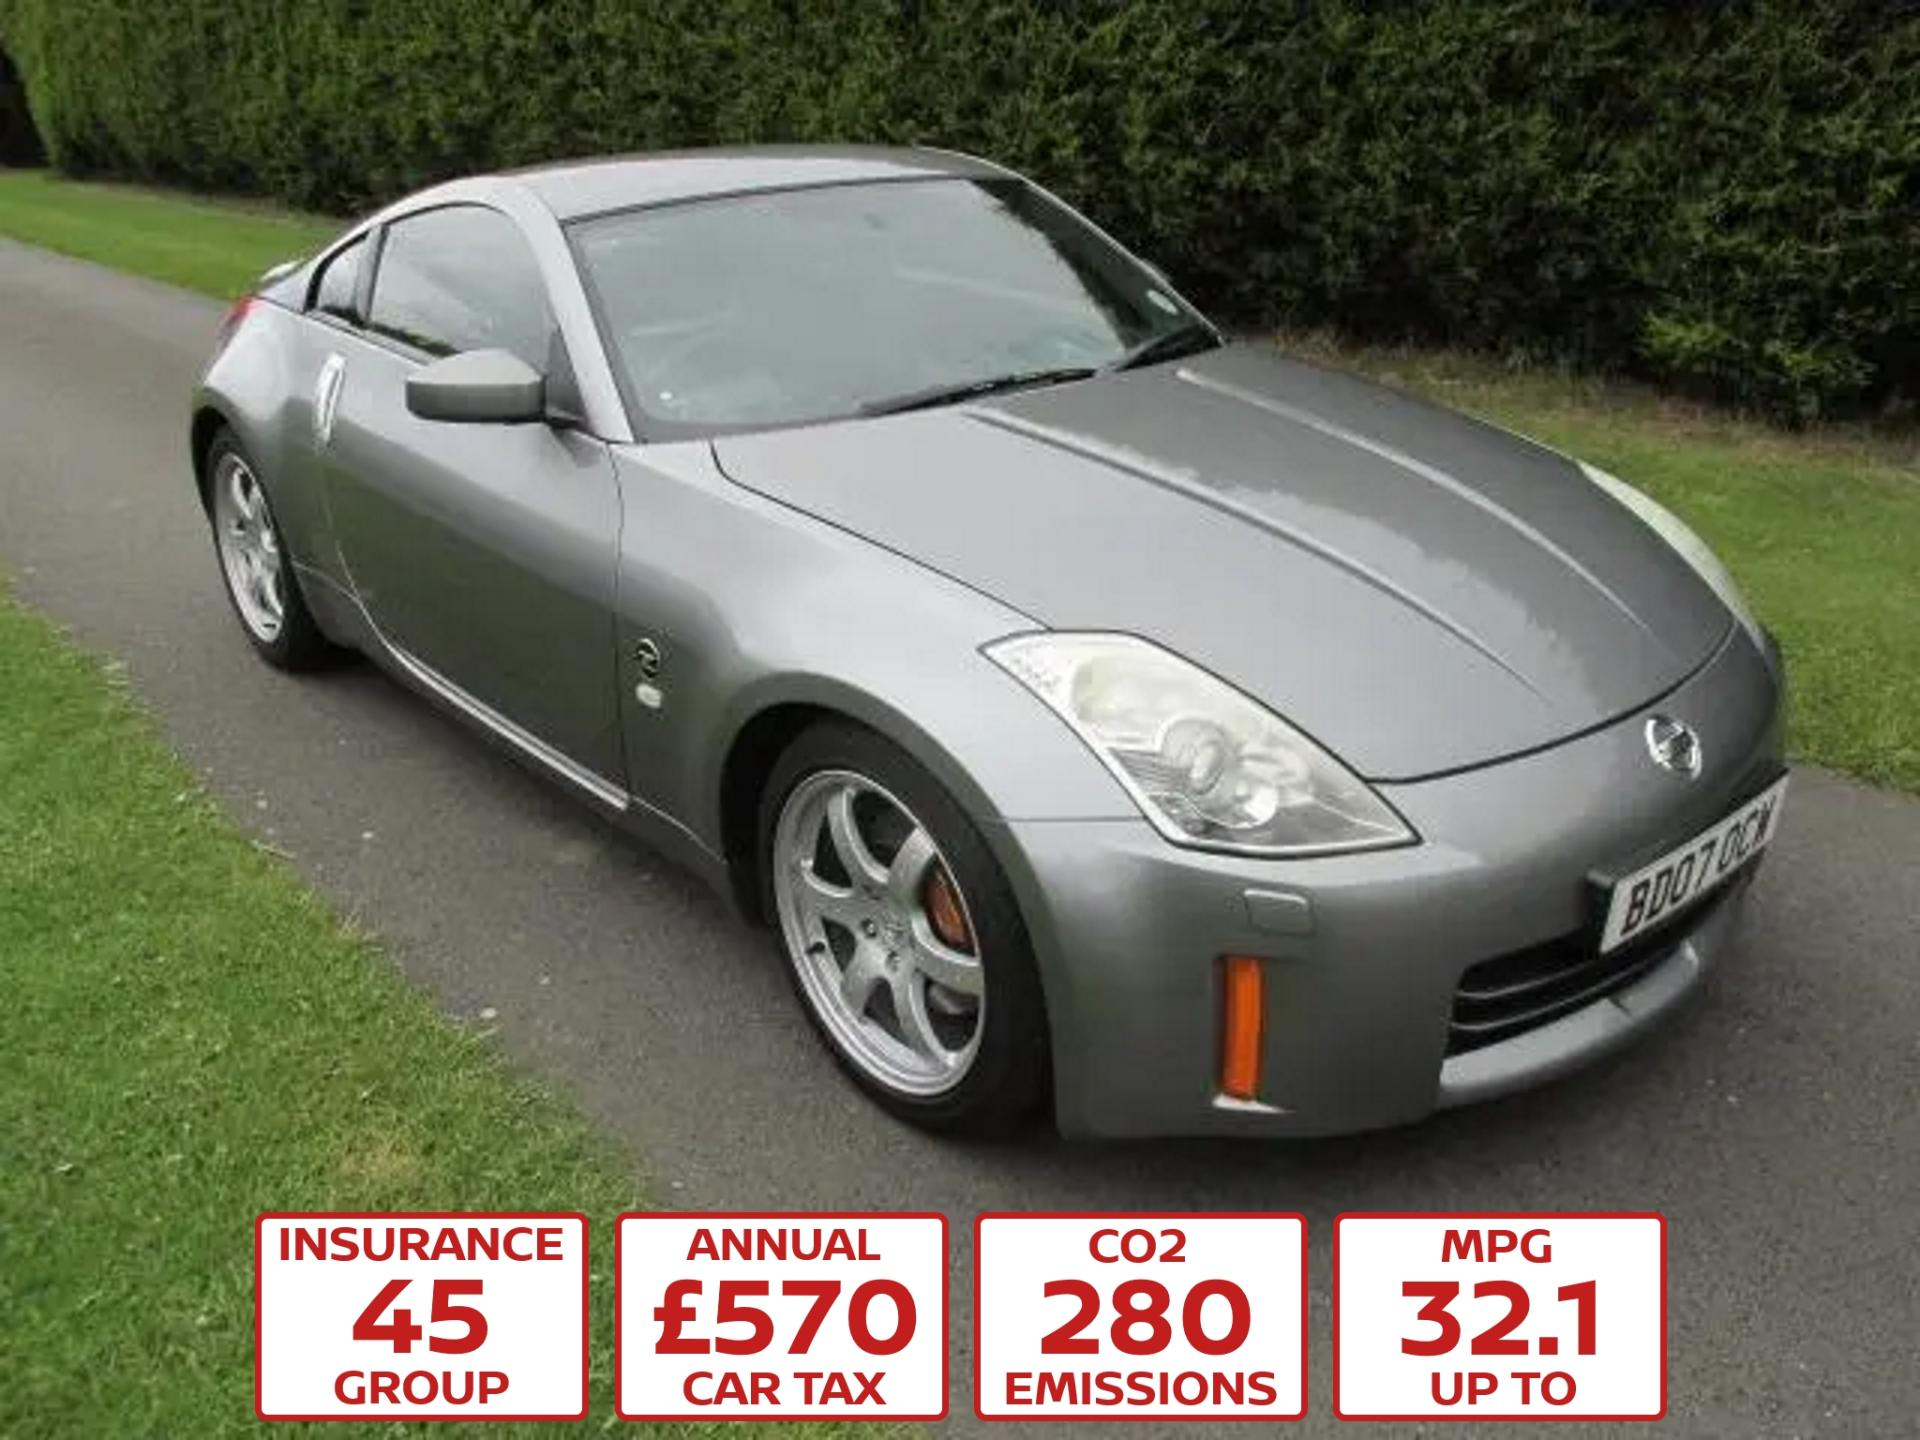 350Z For Sale Near Me >> 14 Used Nissan 350z Cars For Sale At Motors Co Uk